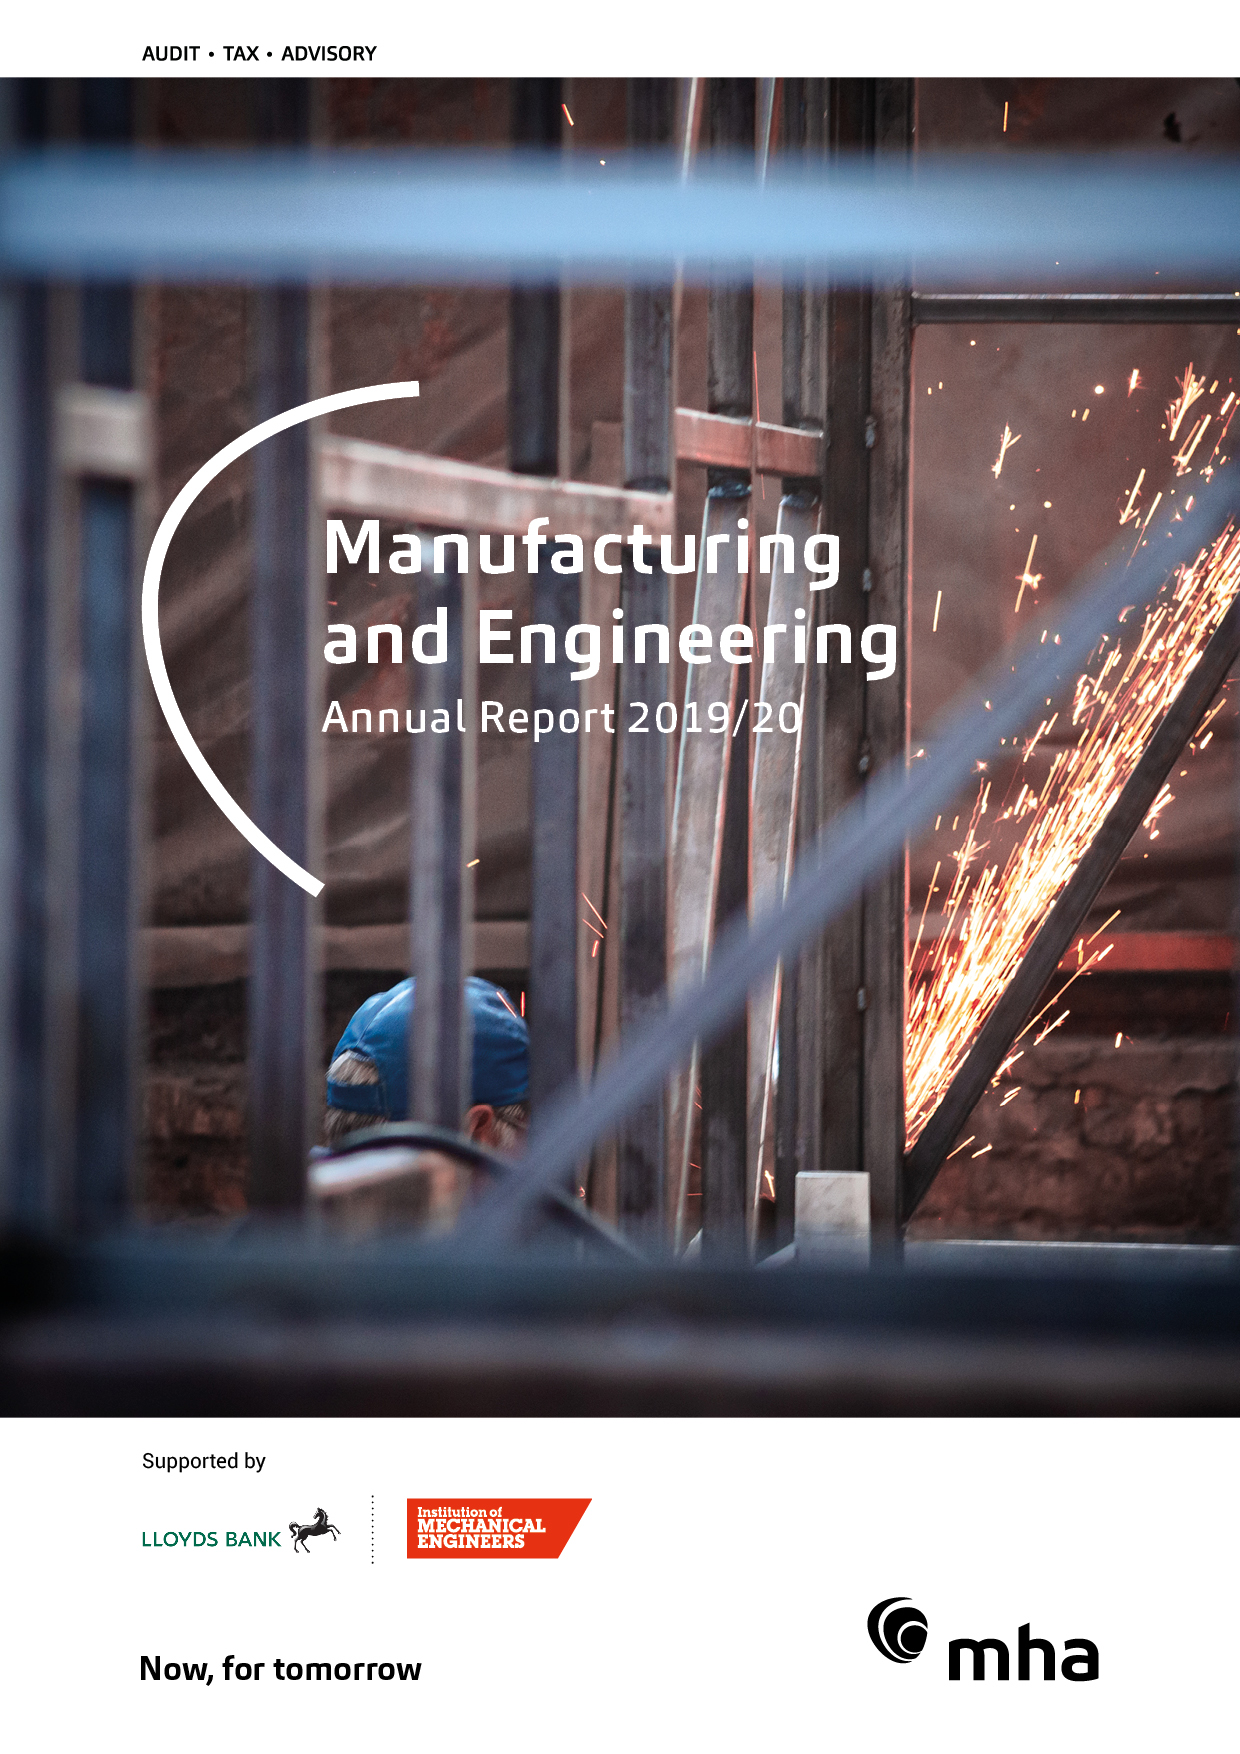 Manufacturing and Engineering Report 2019/20